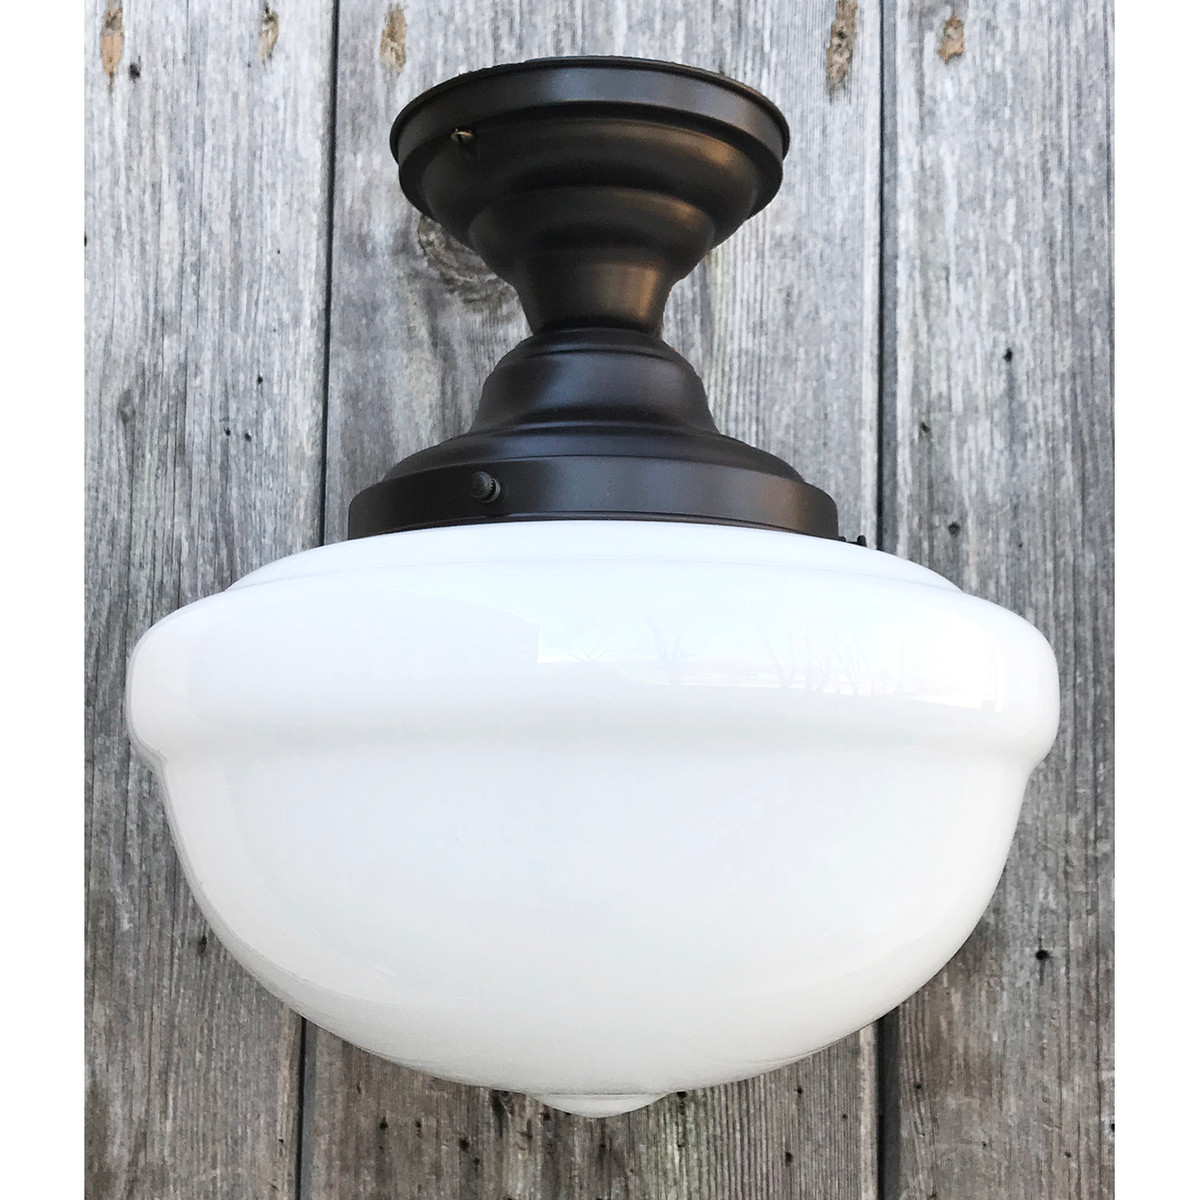 L21019 - Antique Shade on Custom Light Fixture